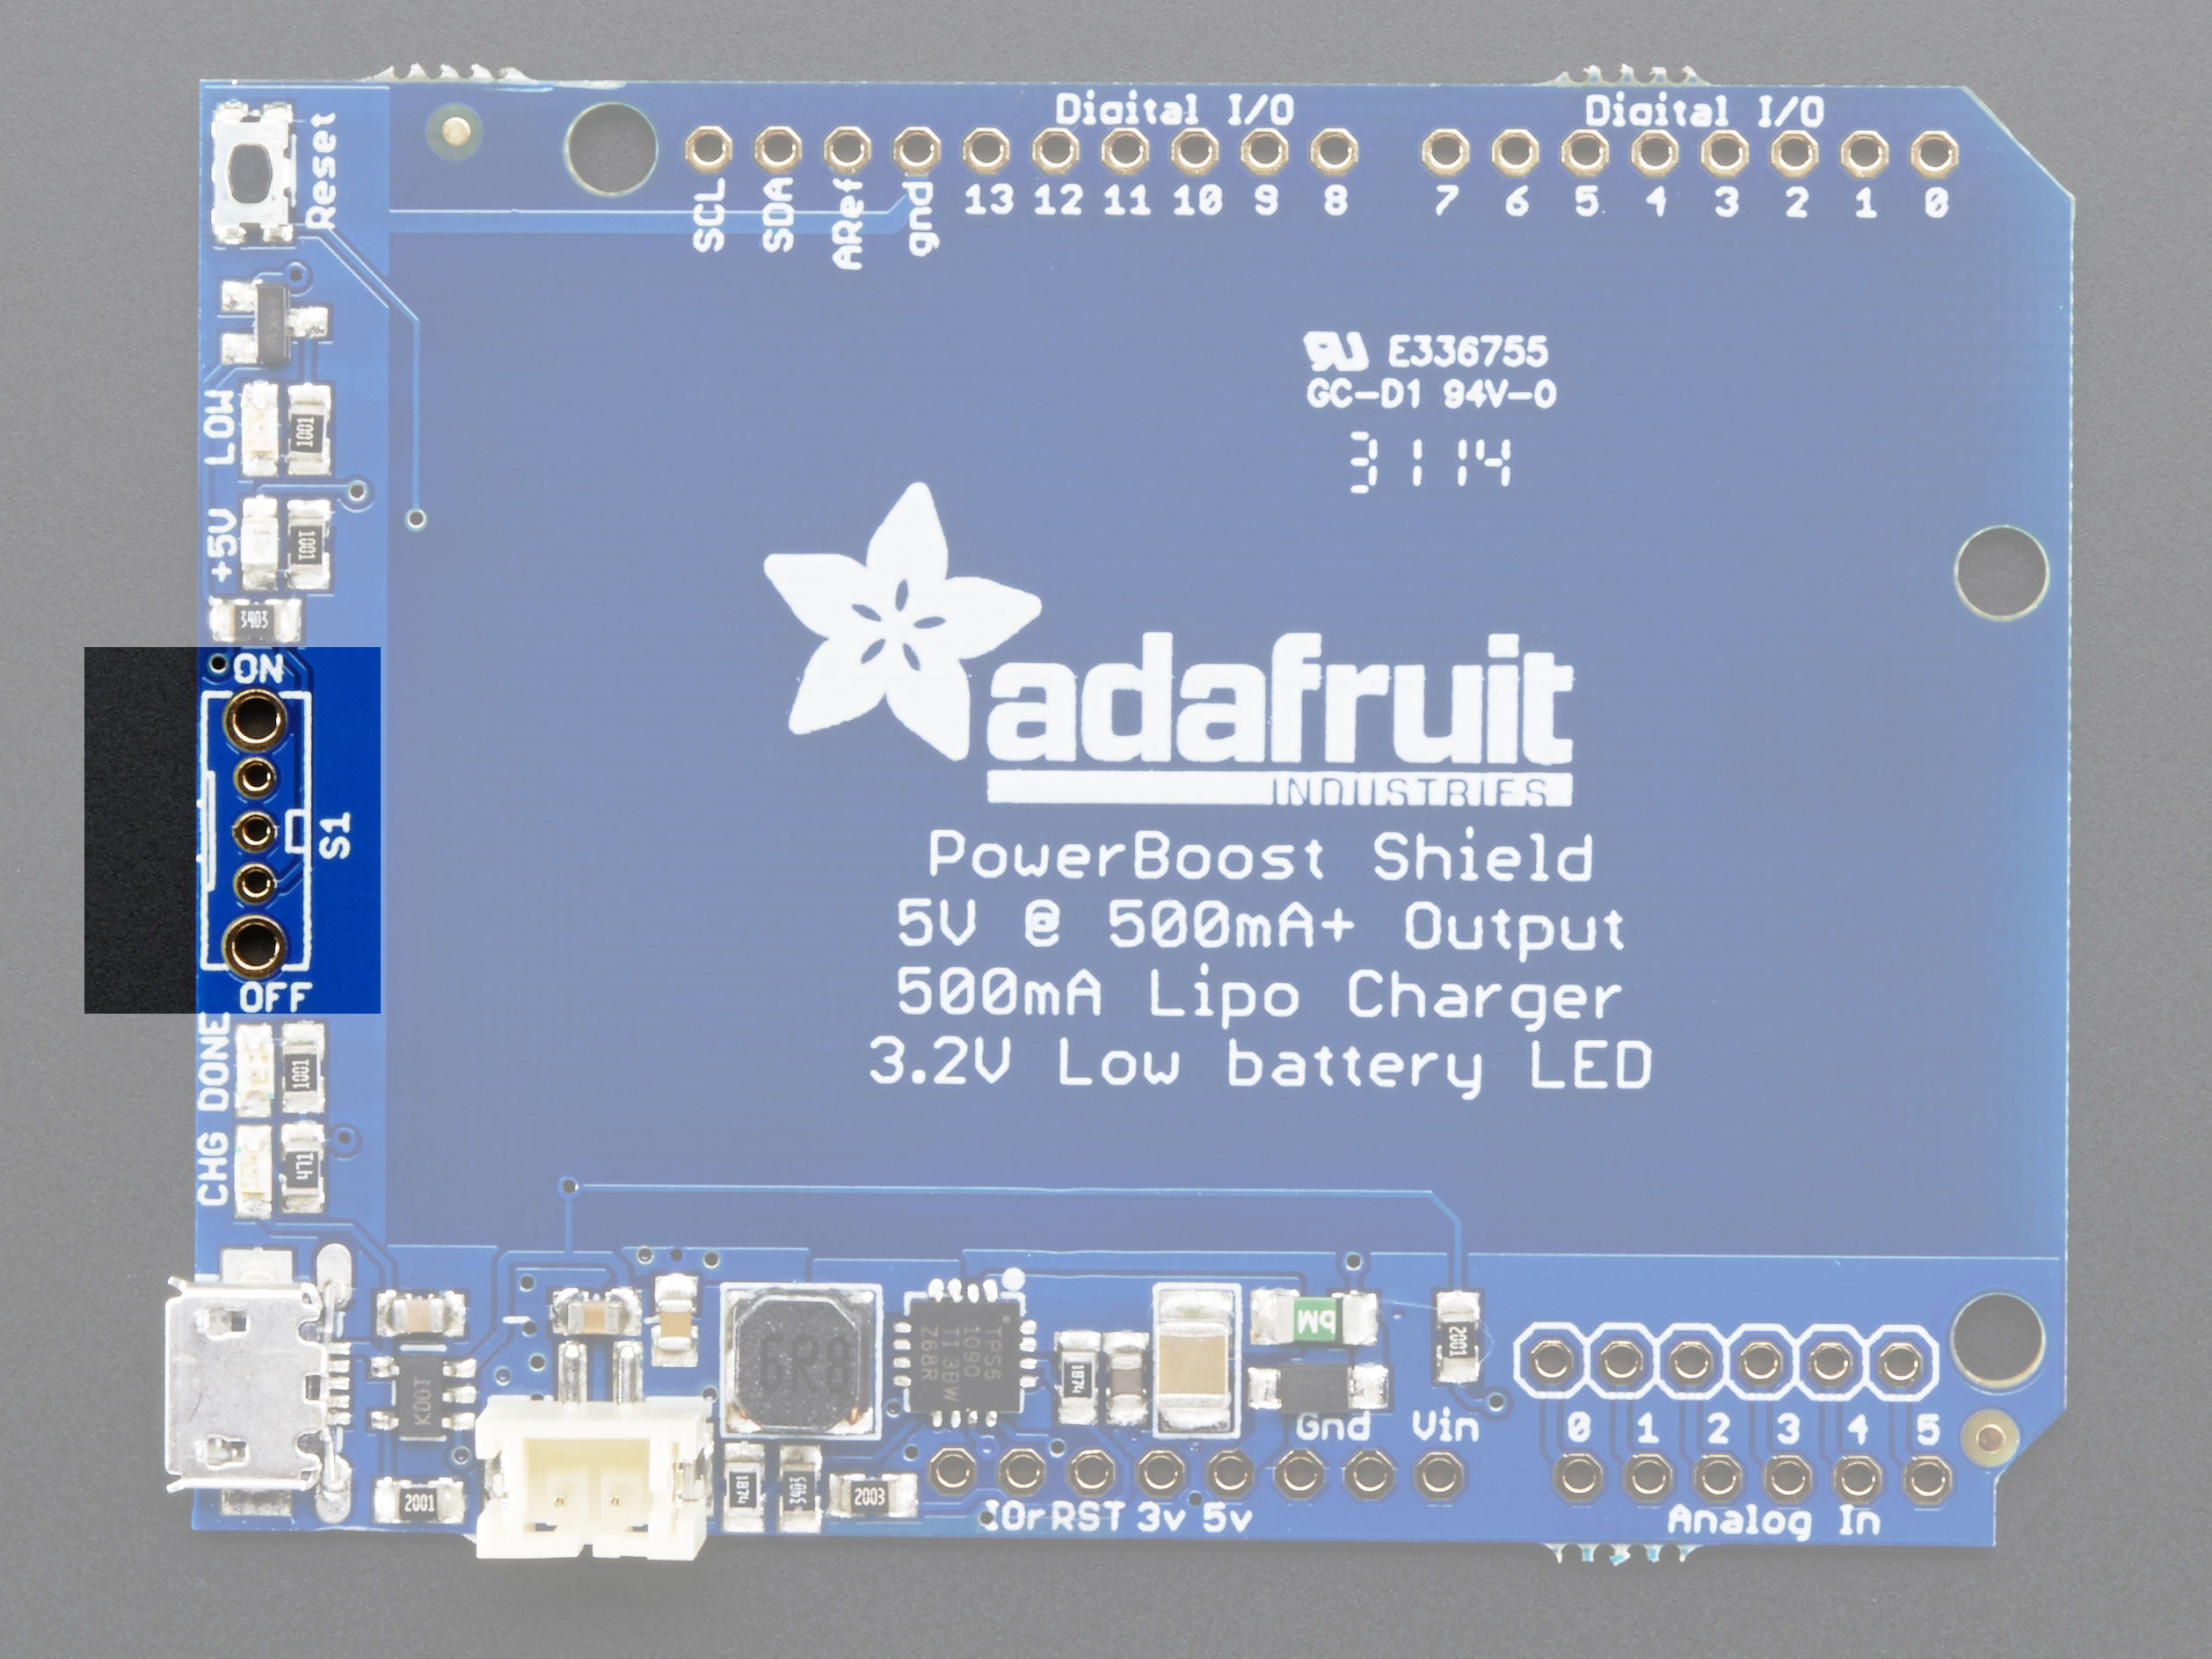 adafruit_products_switch.jpg